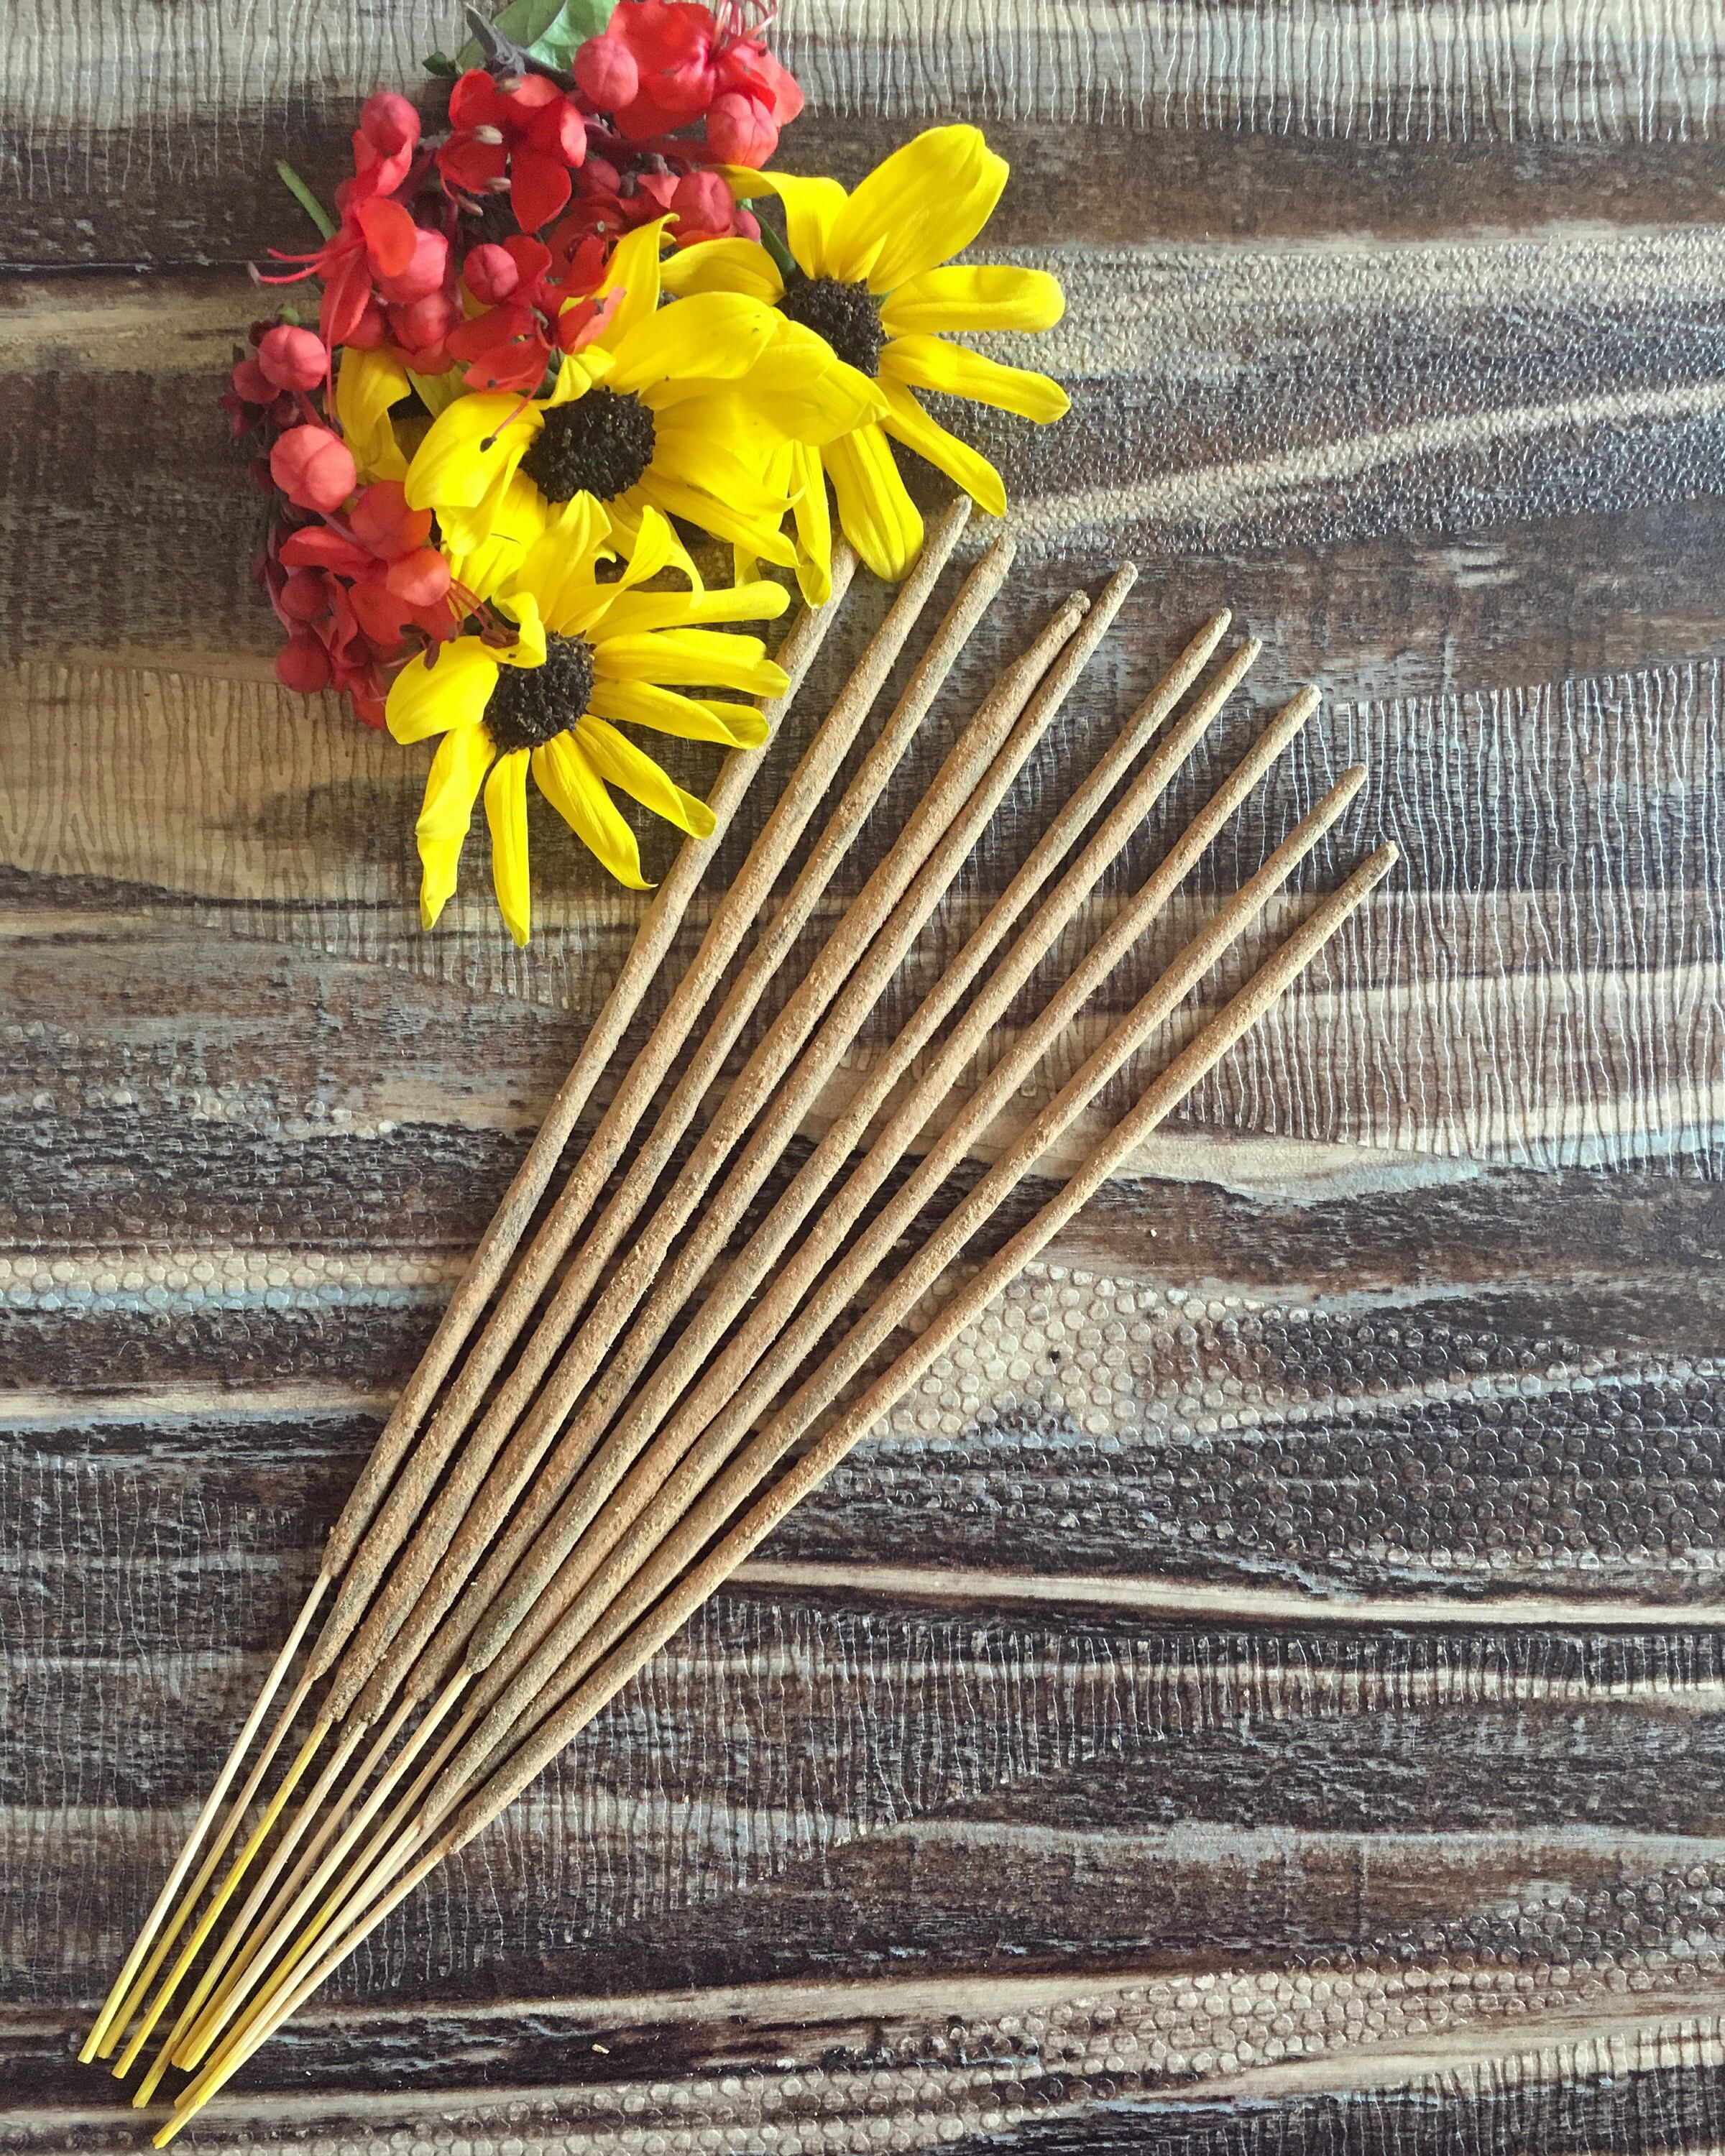 Sandalwood incense sticks india 250 gms handrolled with essential